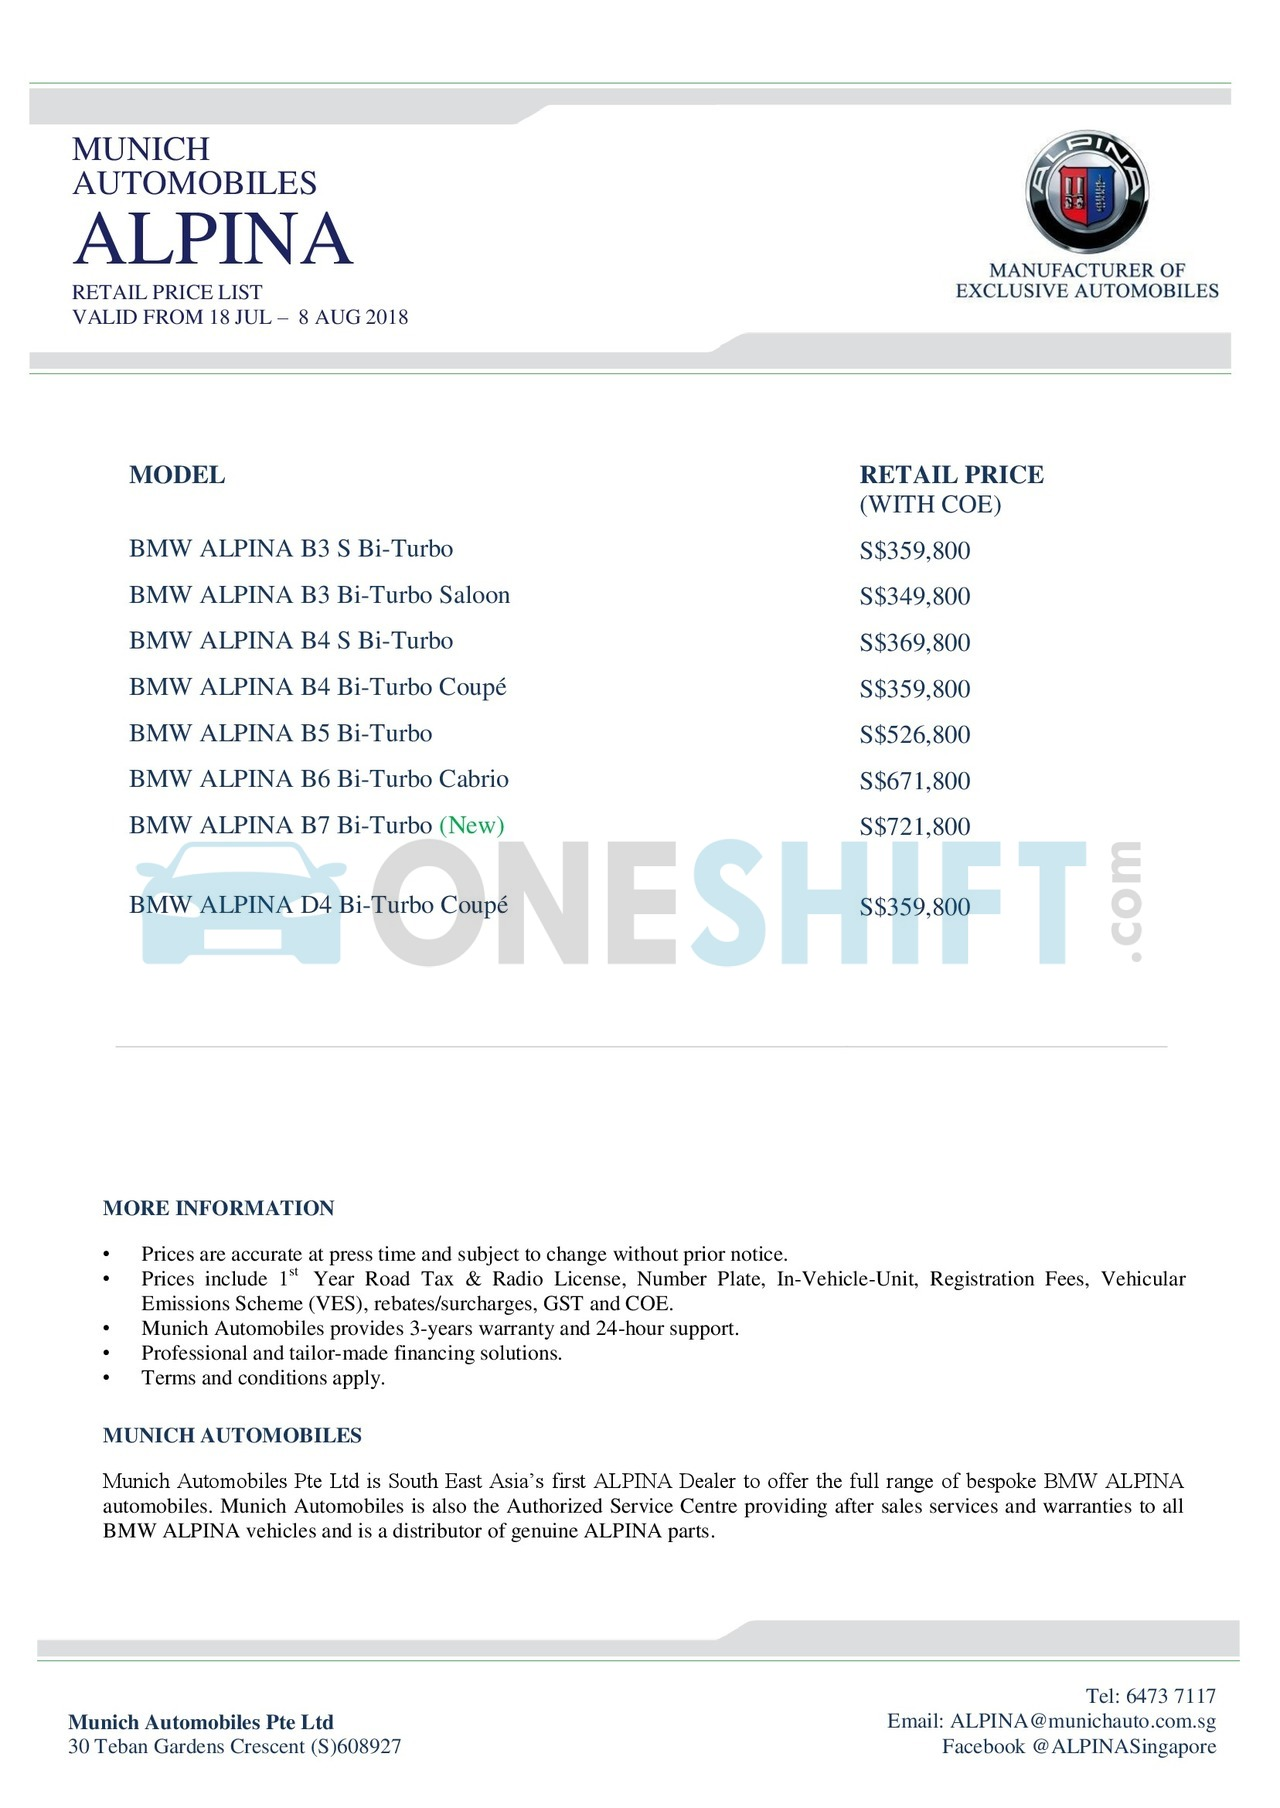 BMW Alpina Singapore Printed Car Price List Oneshiftcom - Bmw alpina price range